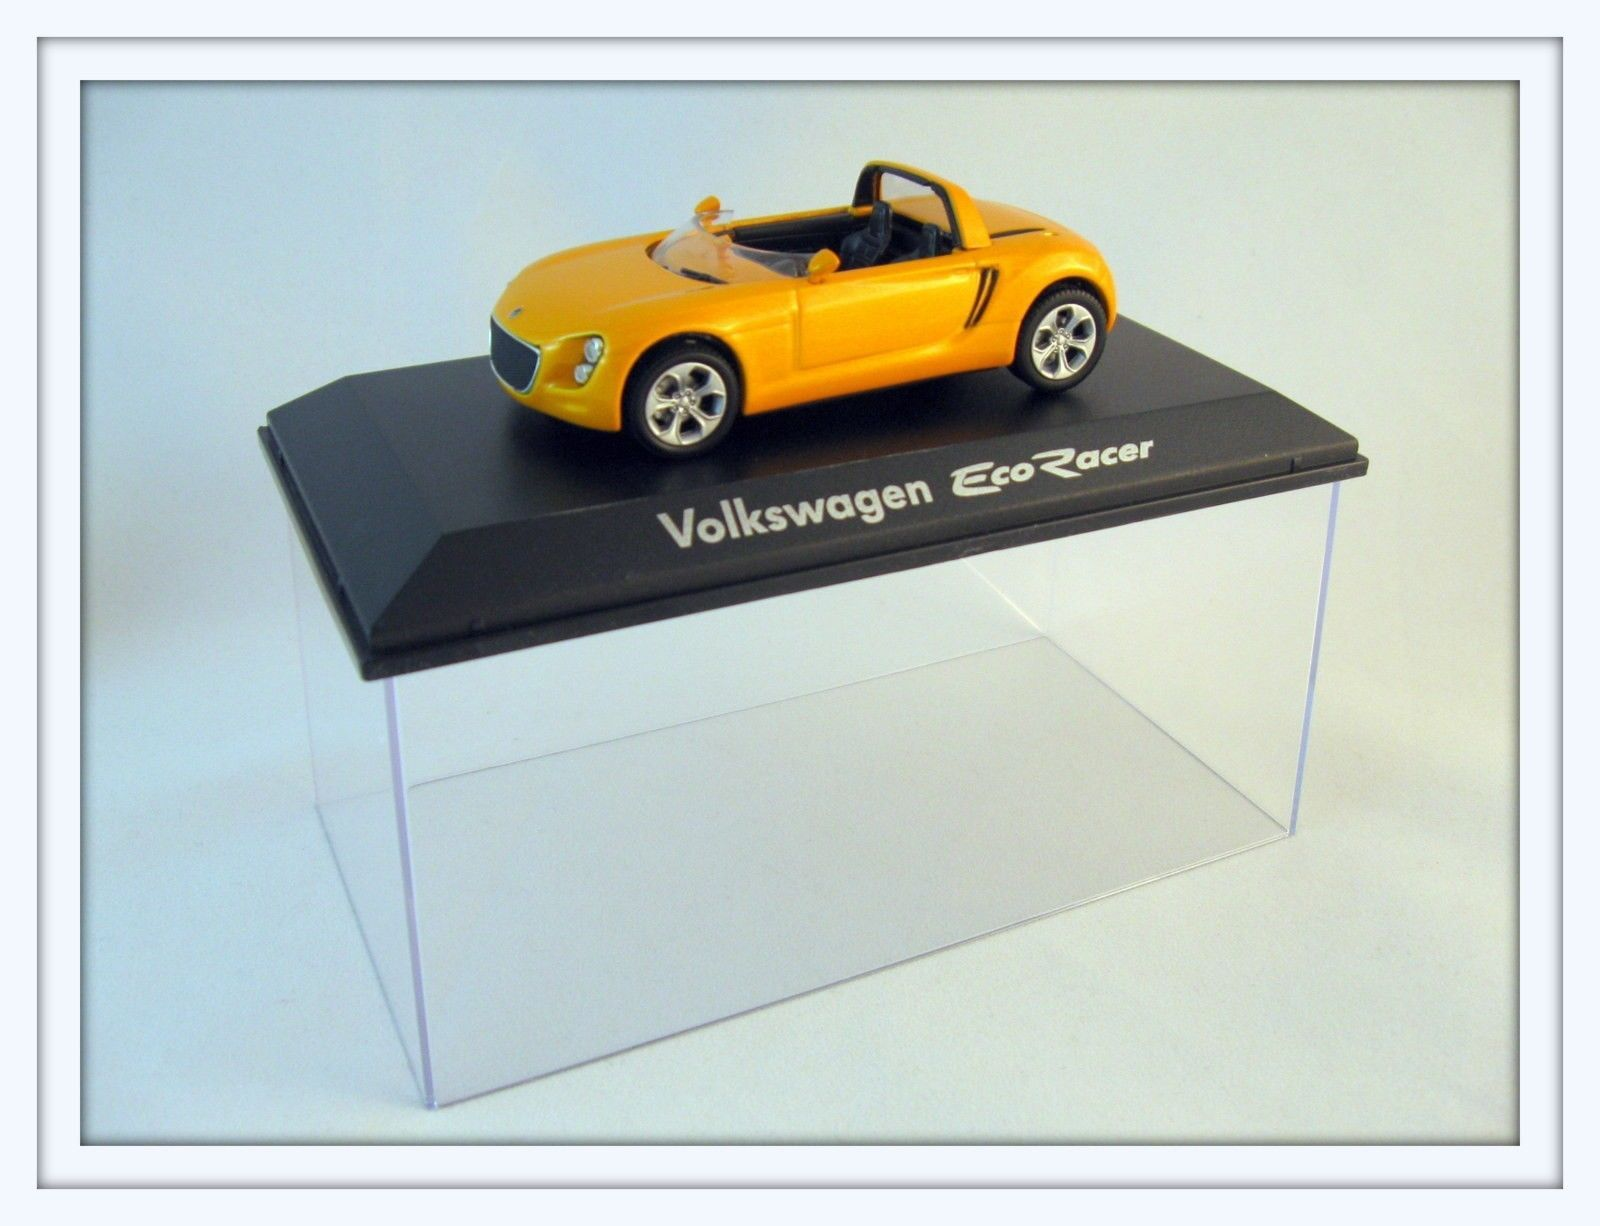 Primary image for VOLKSWAGEN ECO RACER SPIDER,ORANGE EDICOLA1/43 DIECAST CAR COLLECTOR'S MODEL,NEW